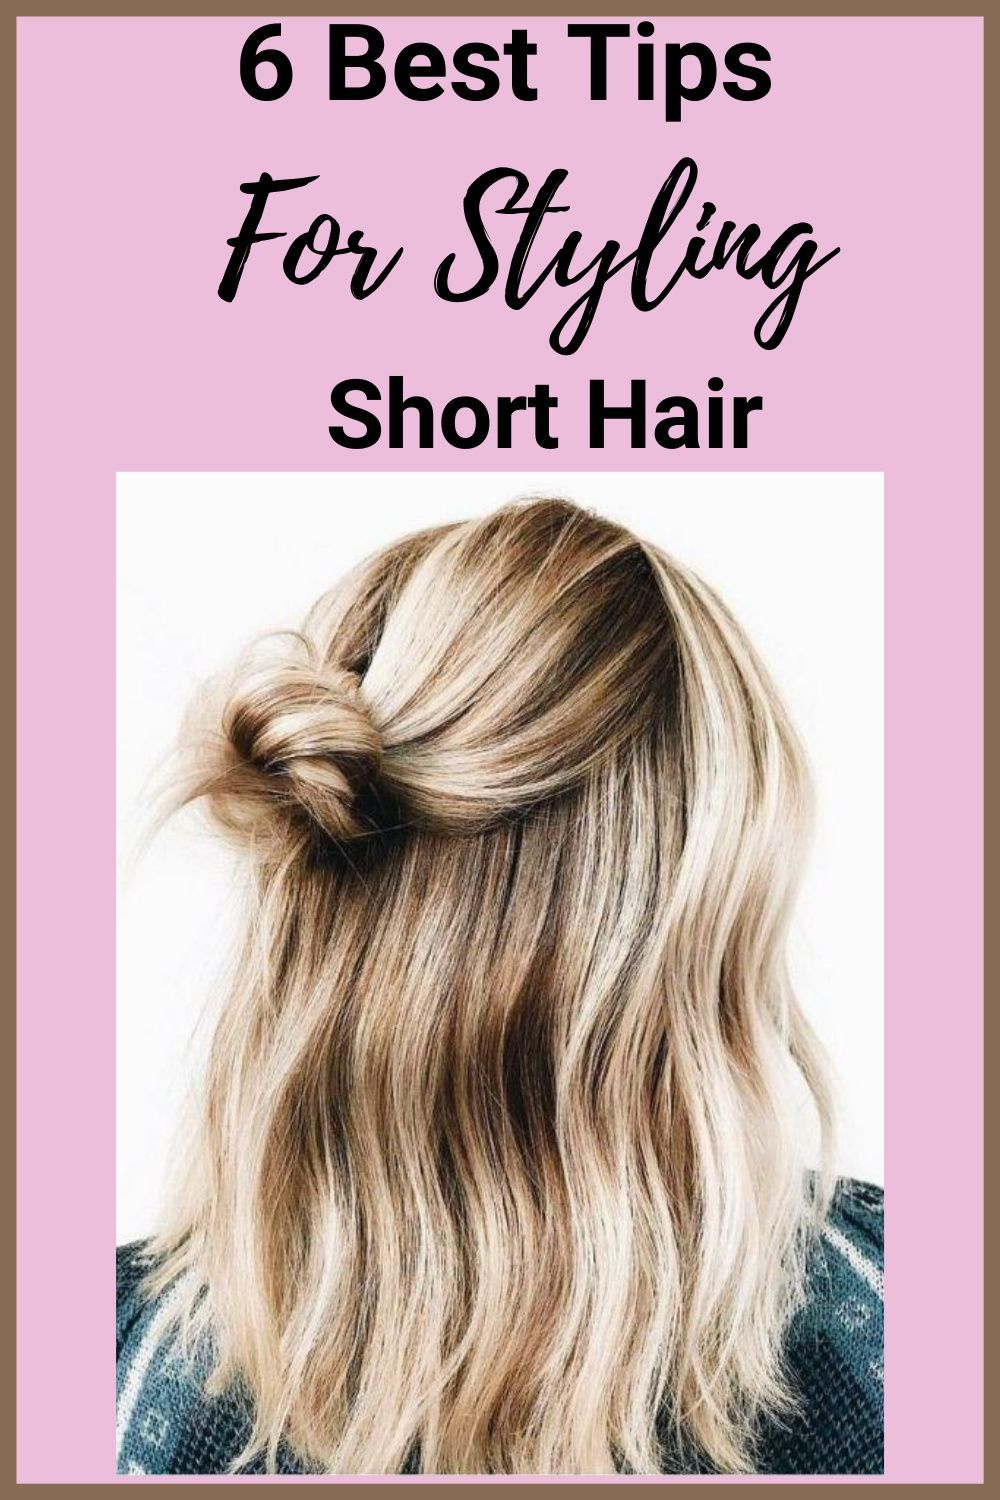 6 Best Tips For Styling Short Hair That Include Hairstyles In 2020 Short Hair Styles Short Hair Styles Easy Hair Styles